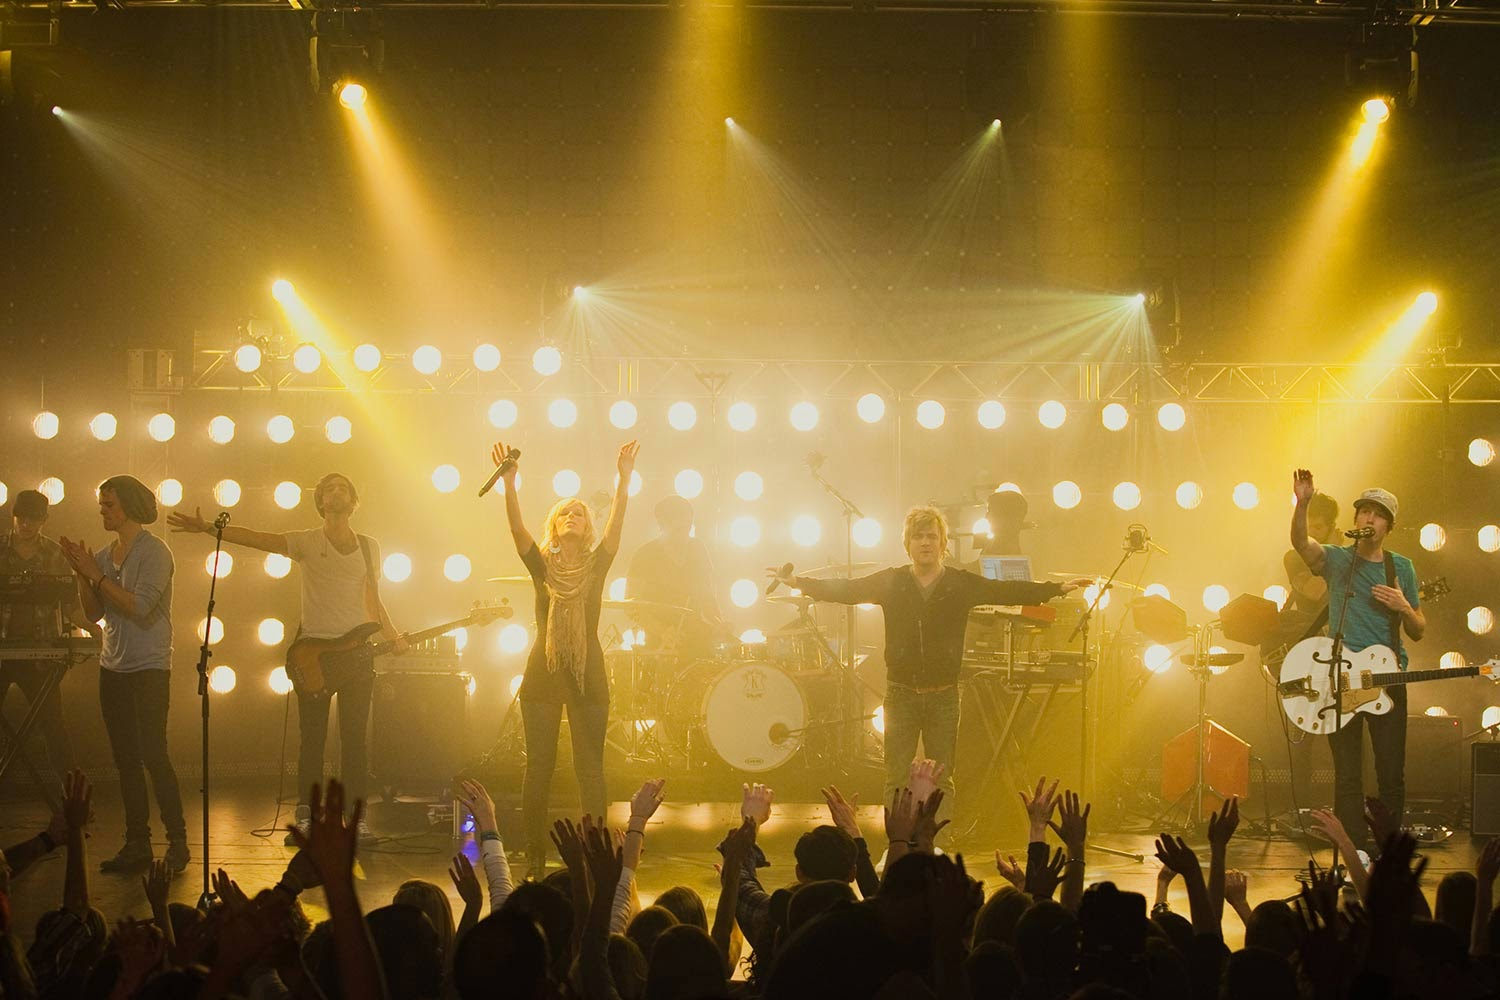 Elevation Worship - Only King Forever 2014 live performance in this tour